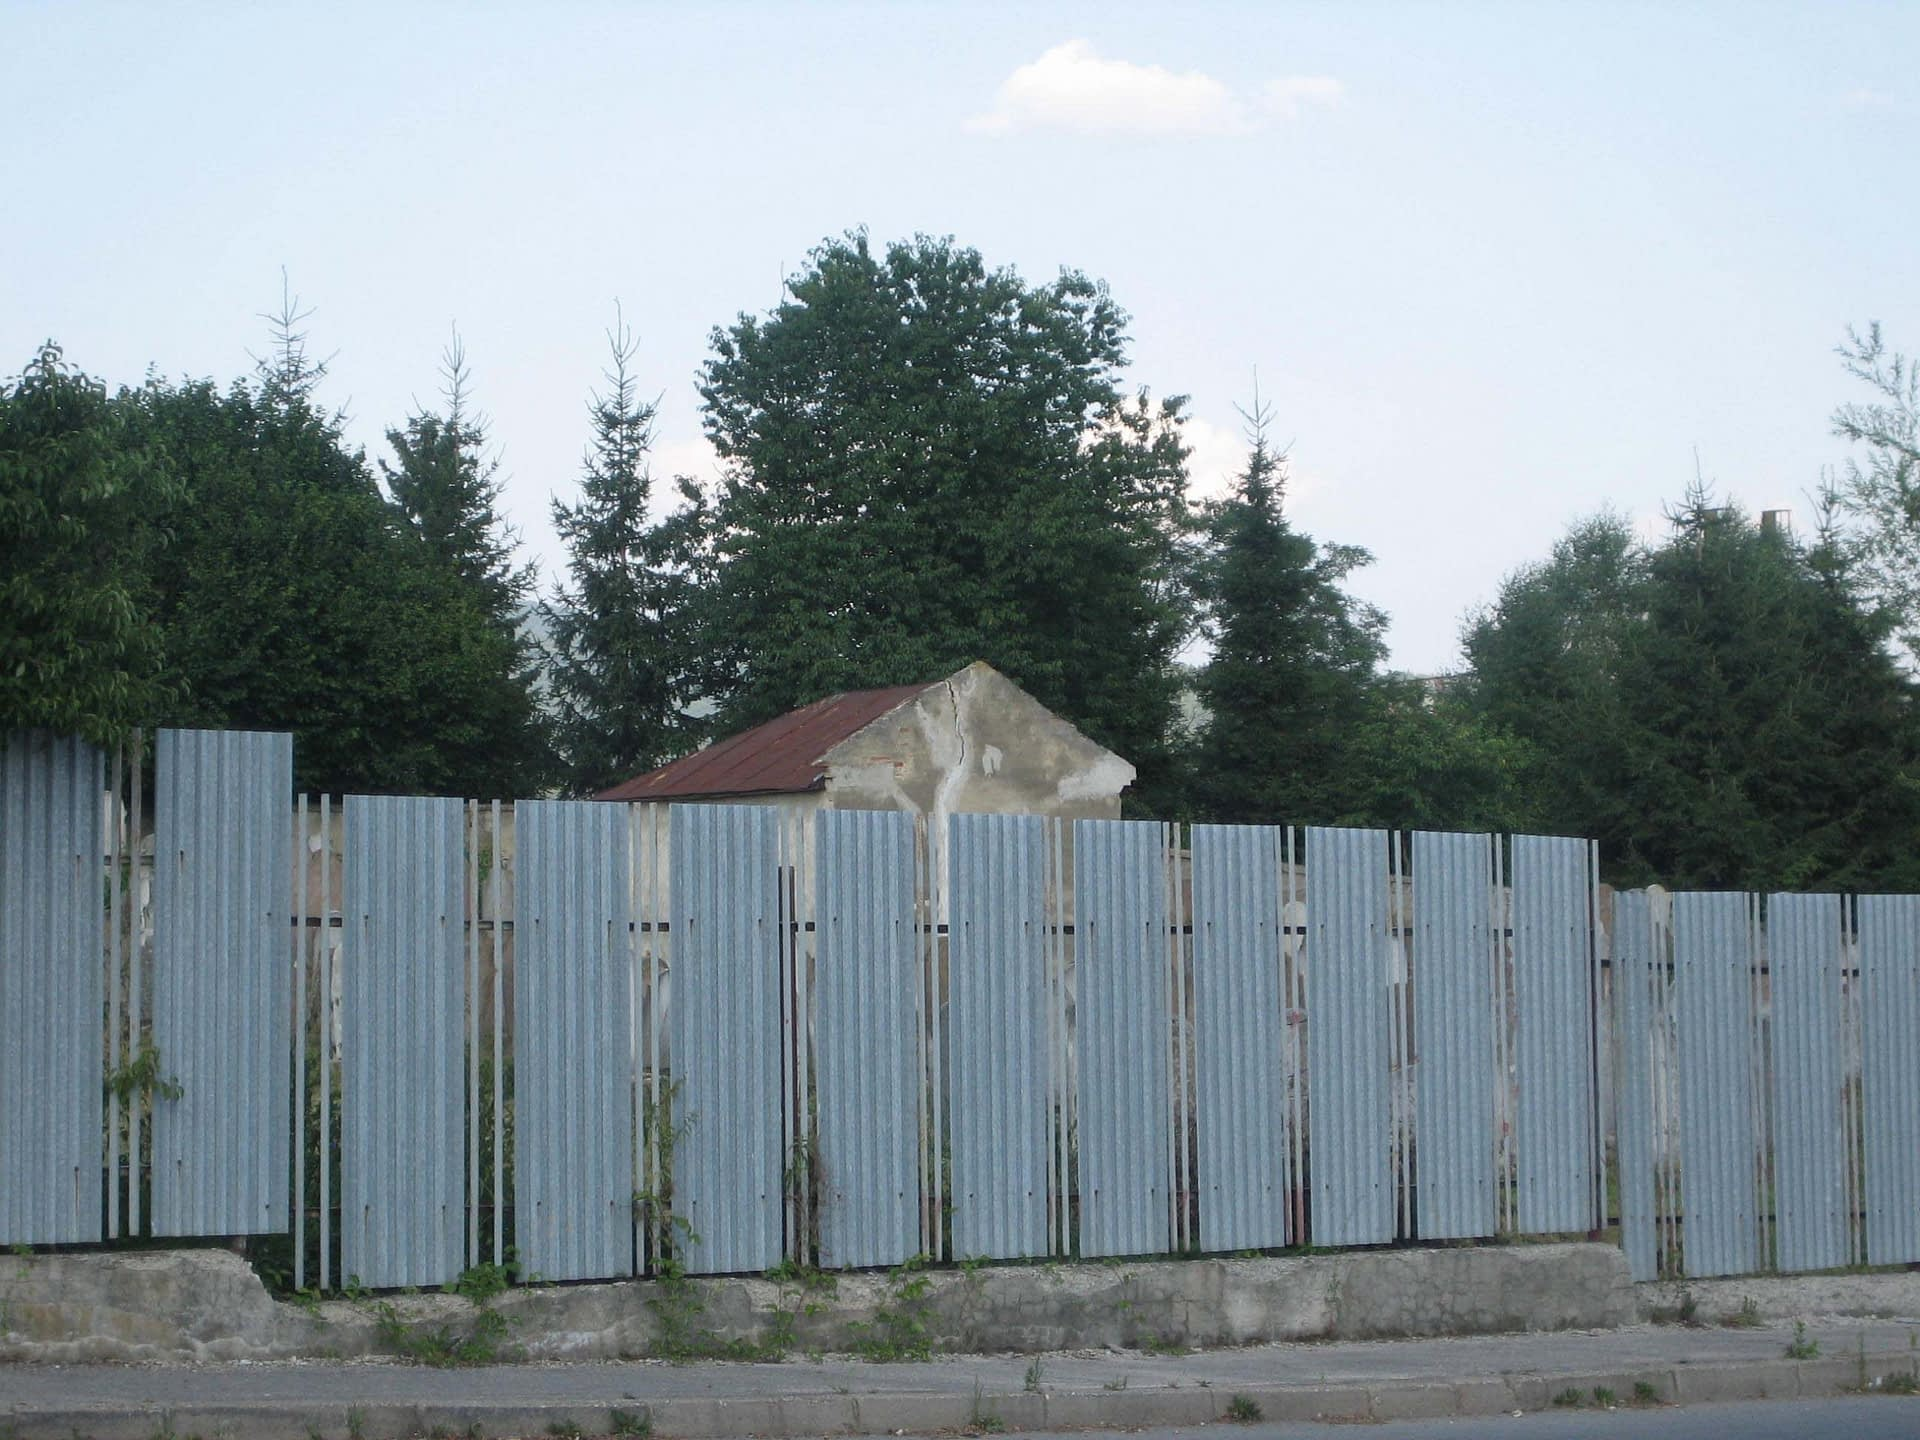 2006 - old fence surrounding the Jewish Cemetery